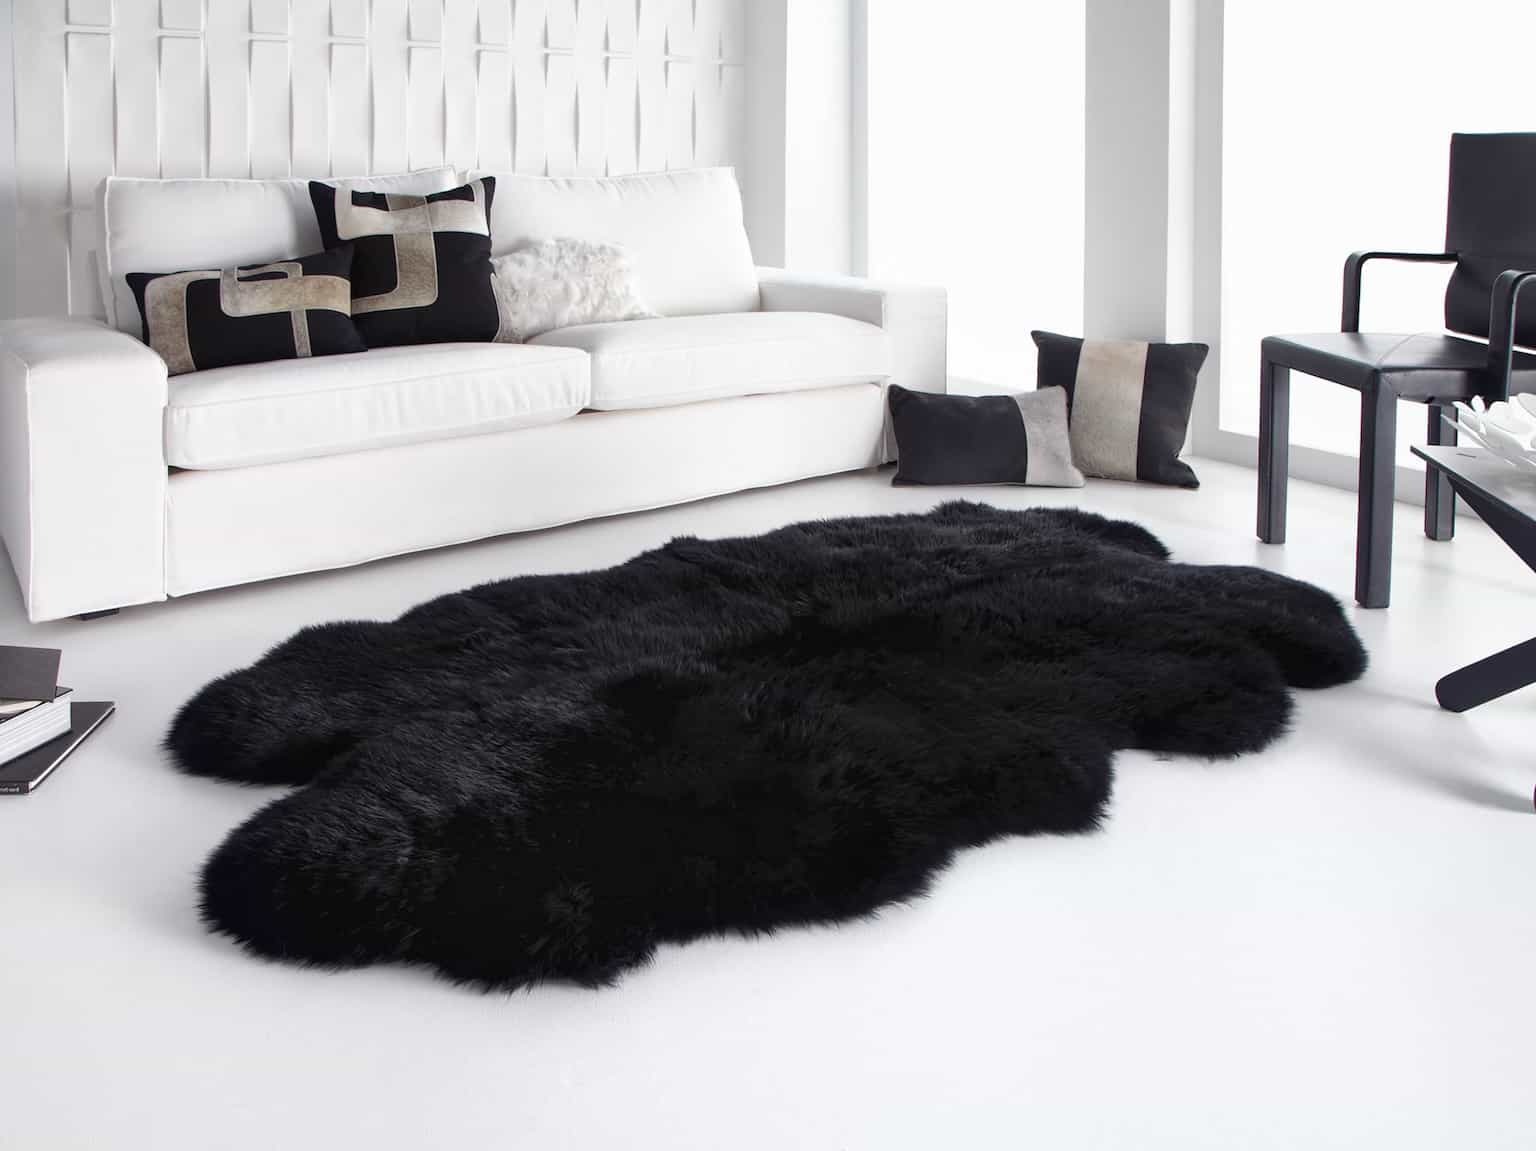 Black And White Minimalist Living Room With Quarto Ivory Longwool Black Sheepskin Rug (View 14 of 15)